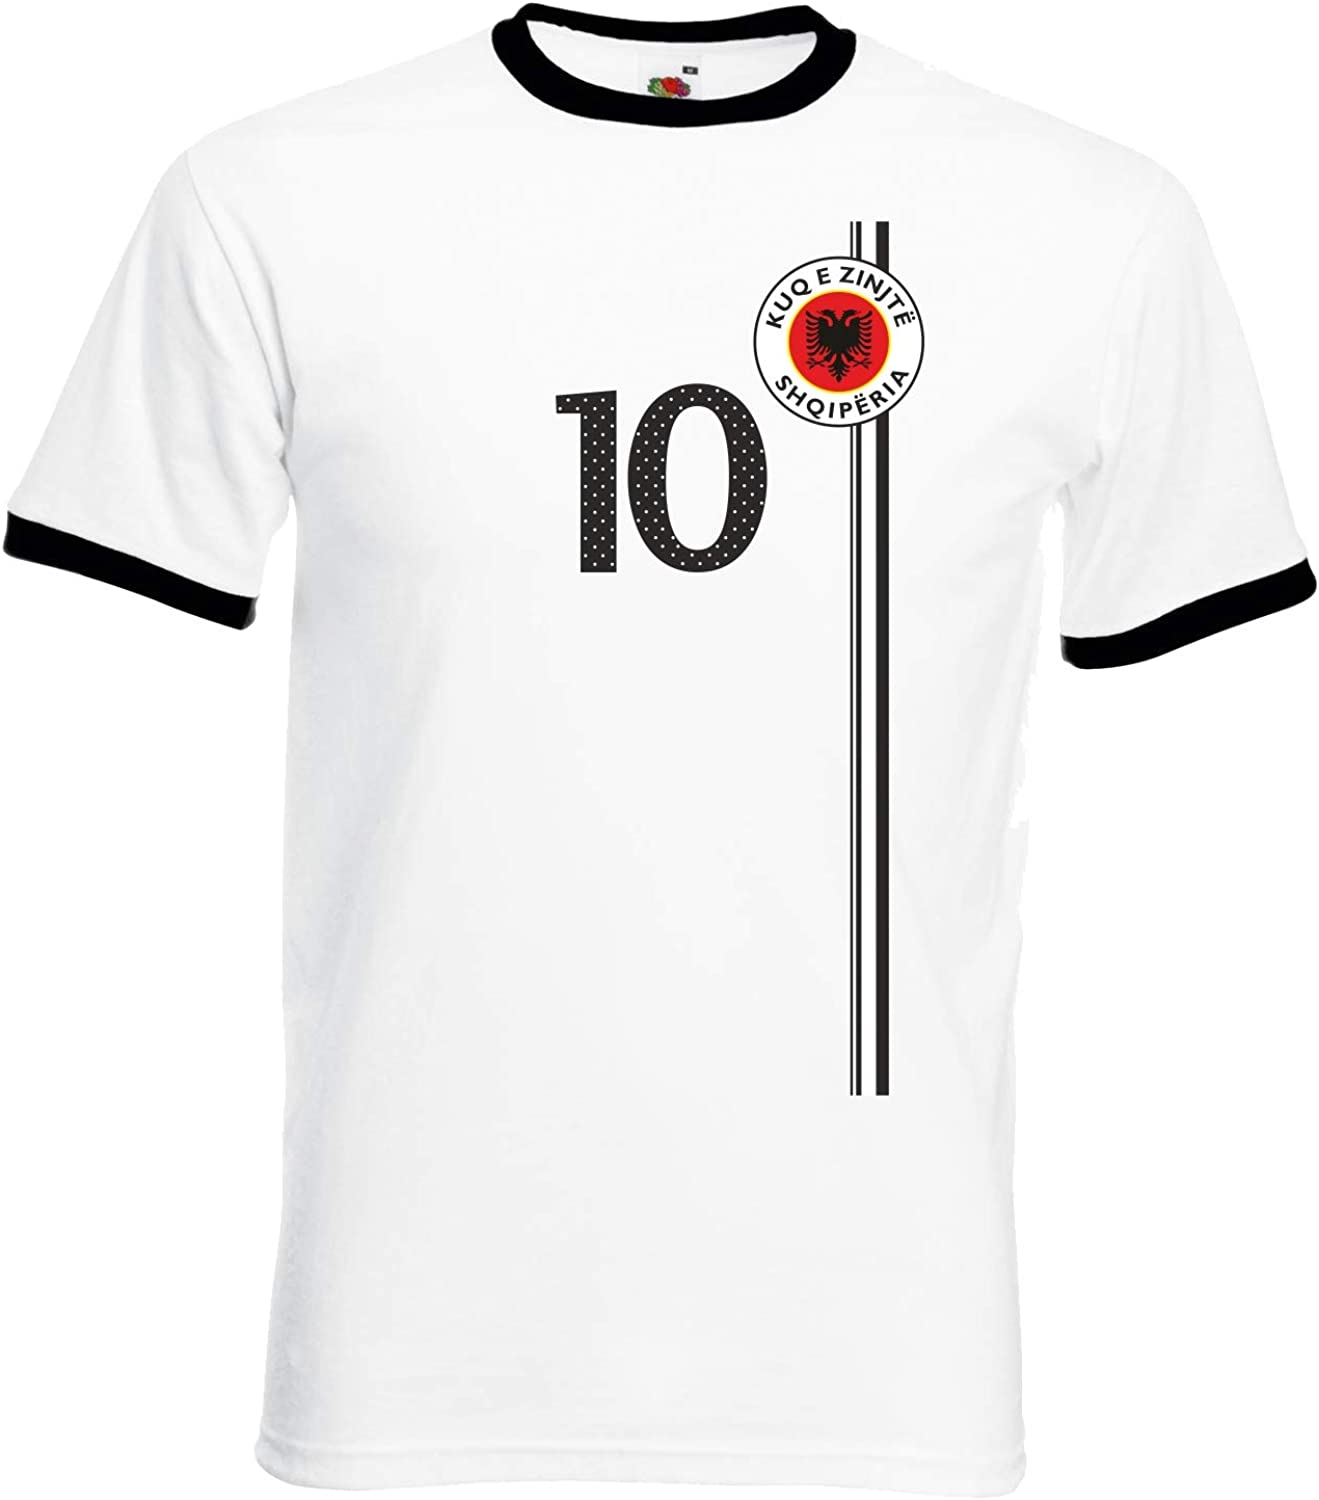 aprom Albania Football t-Shirt in Shirt Look ST-1 Ringer ws